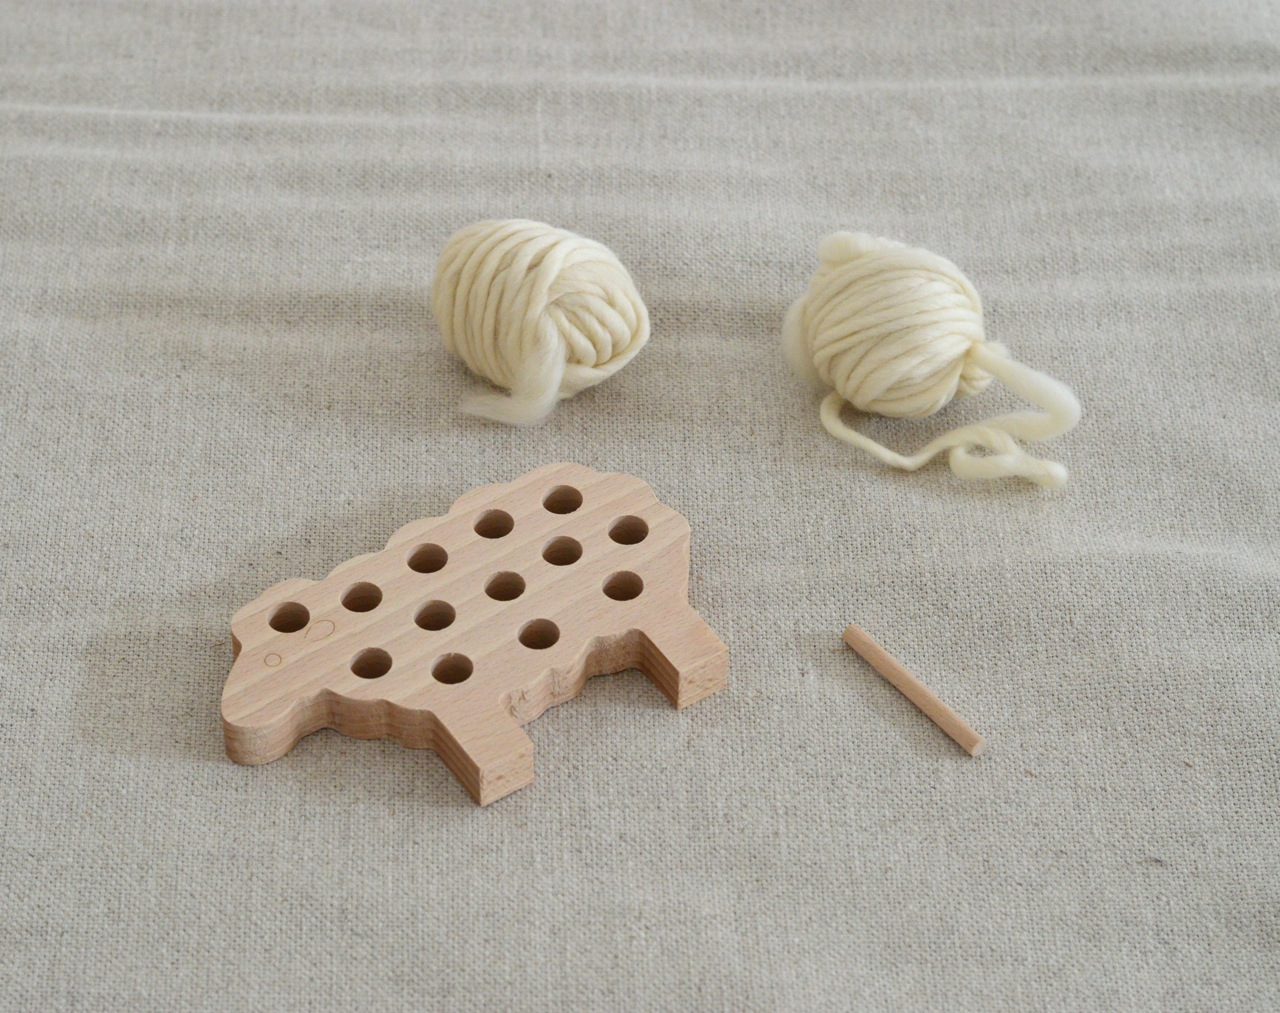 easy knitting toy